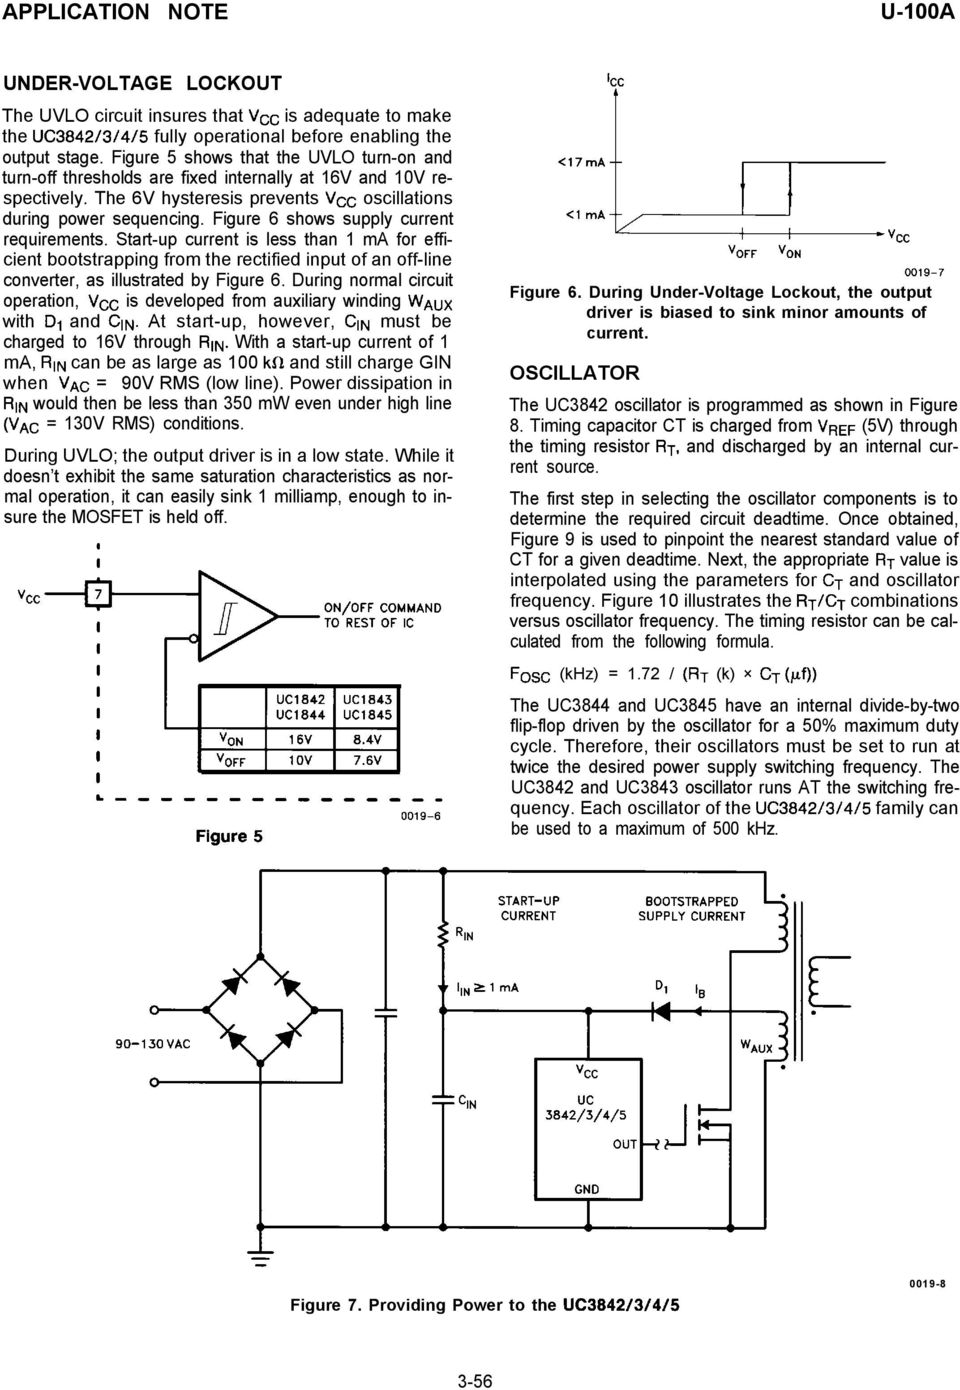 Application Note Uc3842 3 4 5 Provides Low Cost Current Mode Control 12to 16vdc Regulated Power Supply Circuit Diagram Figure 6 Shows Requirements Start Up Is Less Than 1 Ma